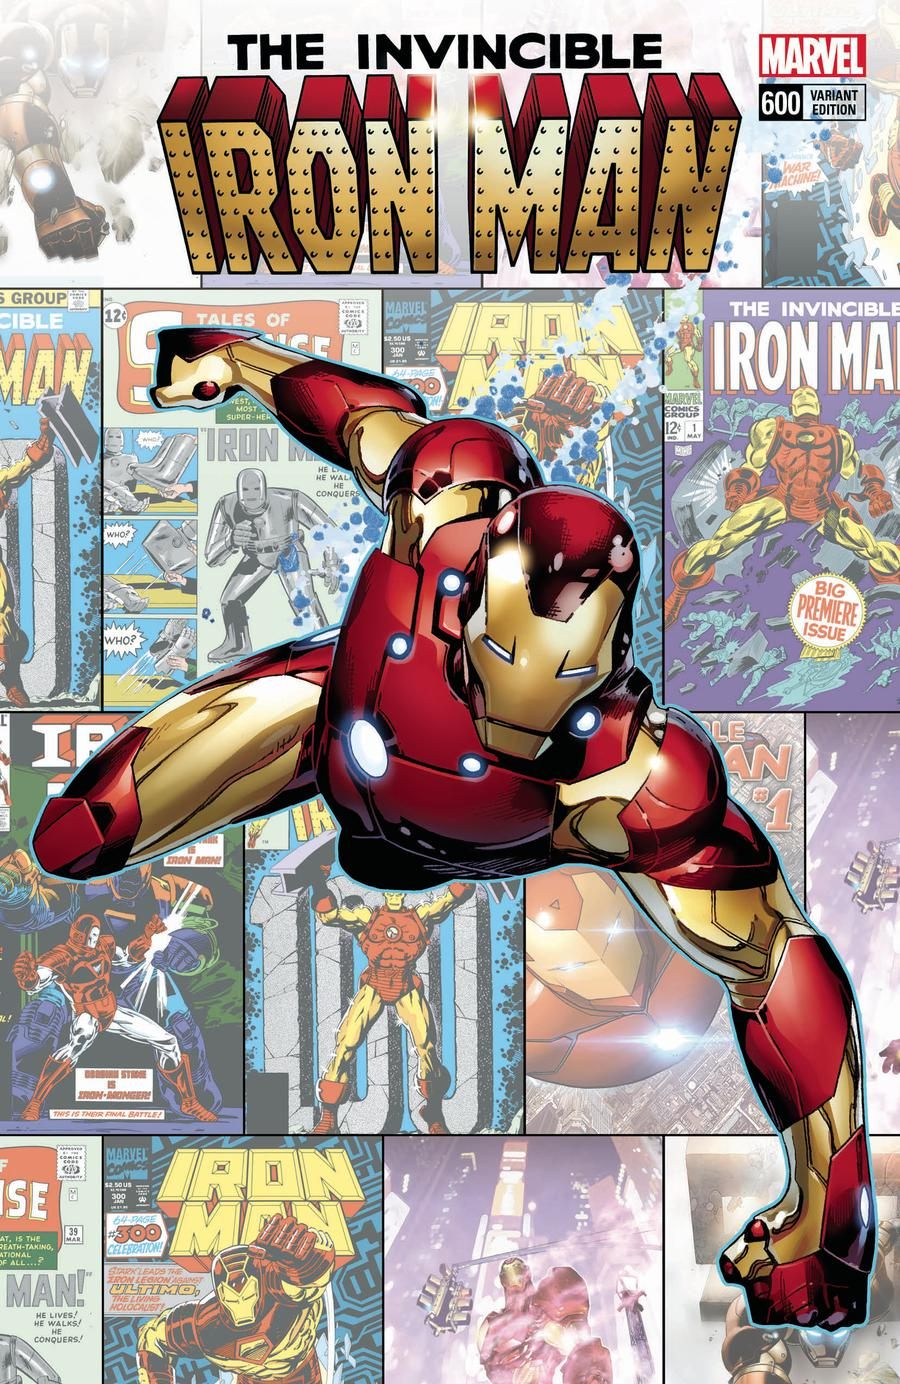 Invincible Iron Man Vol 3 #600 Cover C Incentive Olivier Coipel Variant Cover